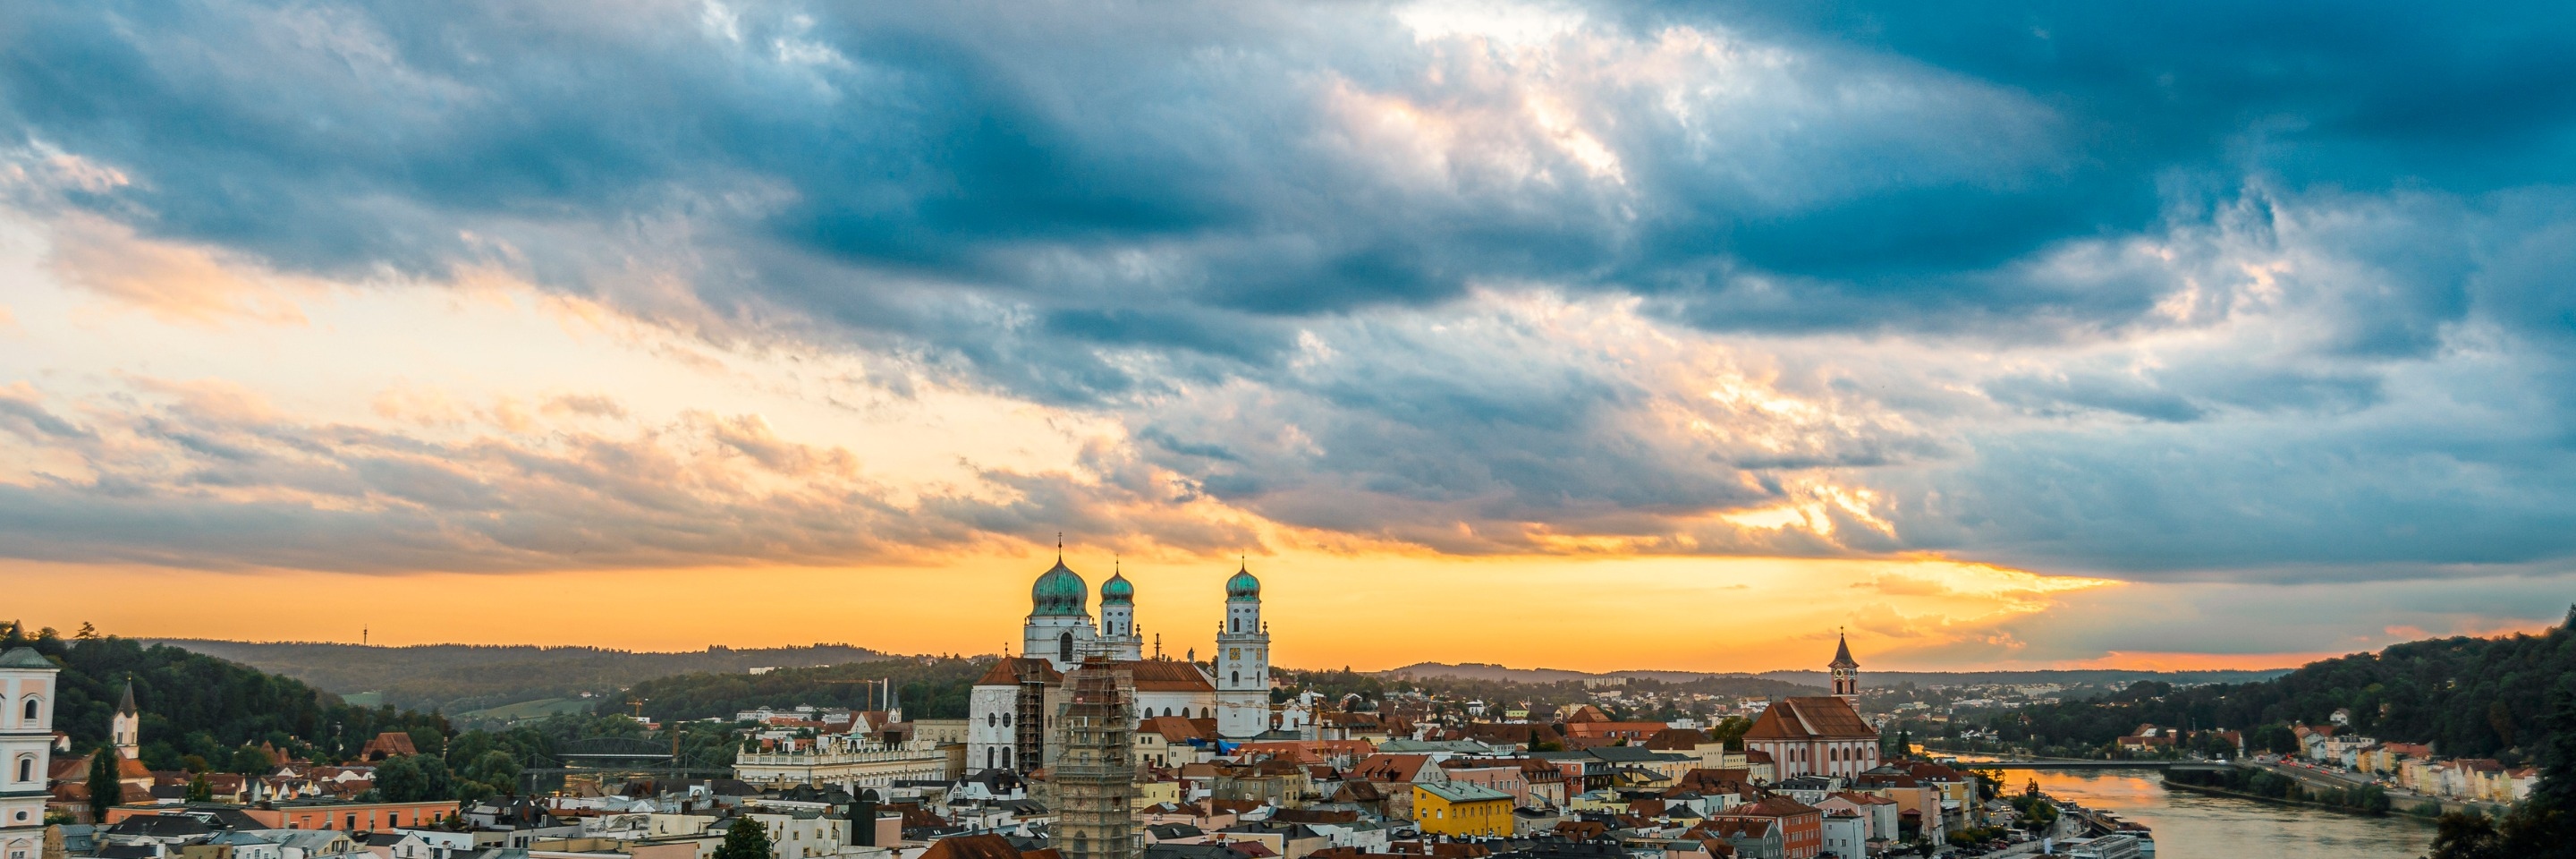 Danube Dreams with 2 Nights in Prague for Wine Lovers (Westbound)